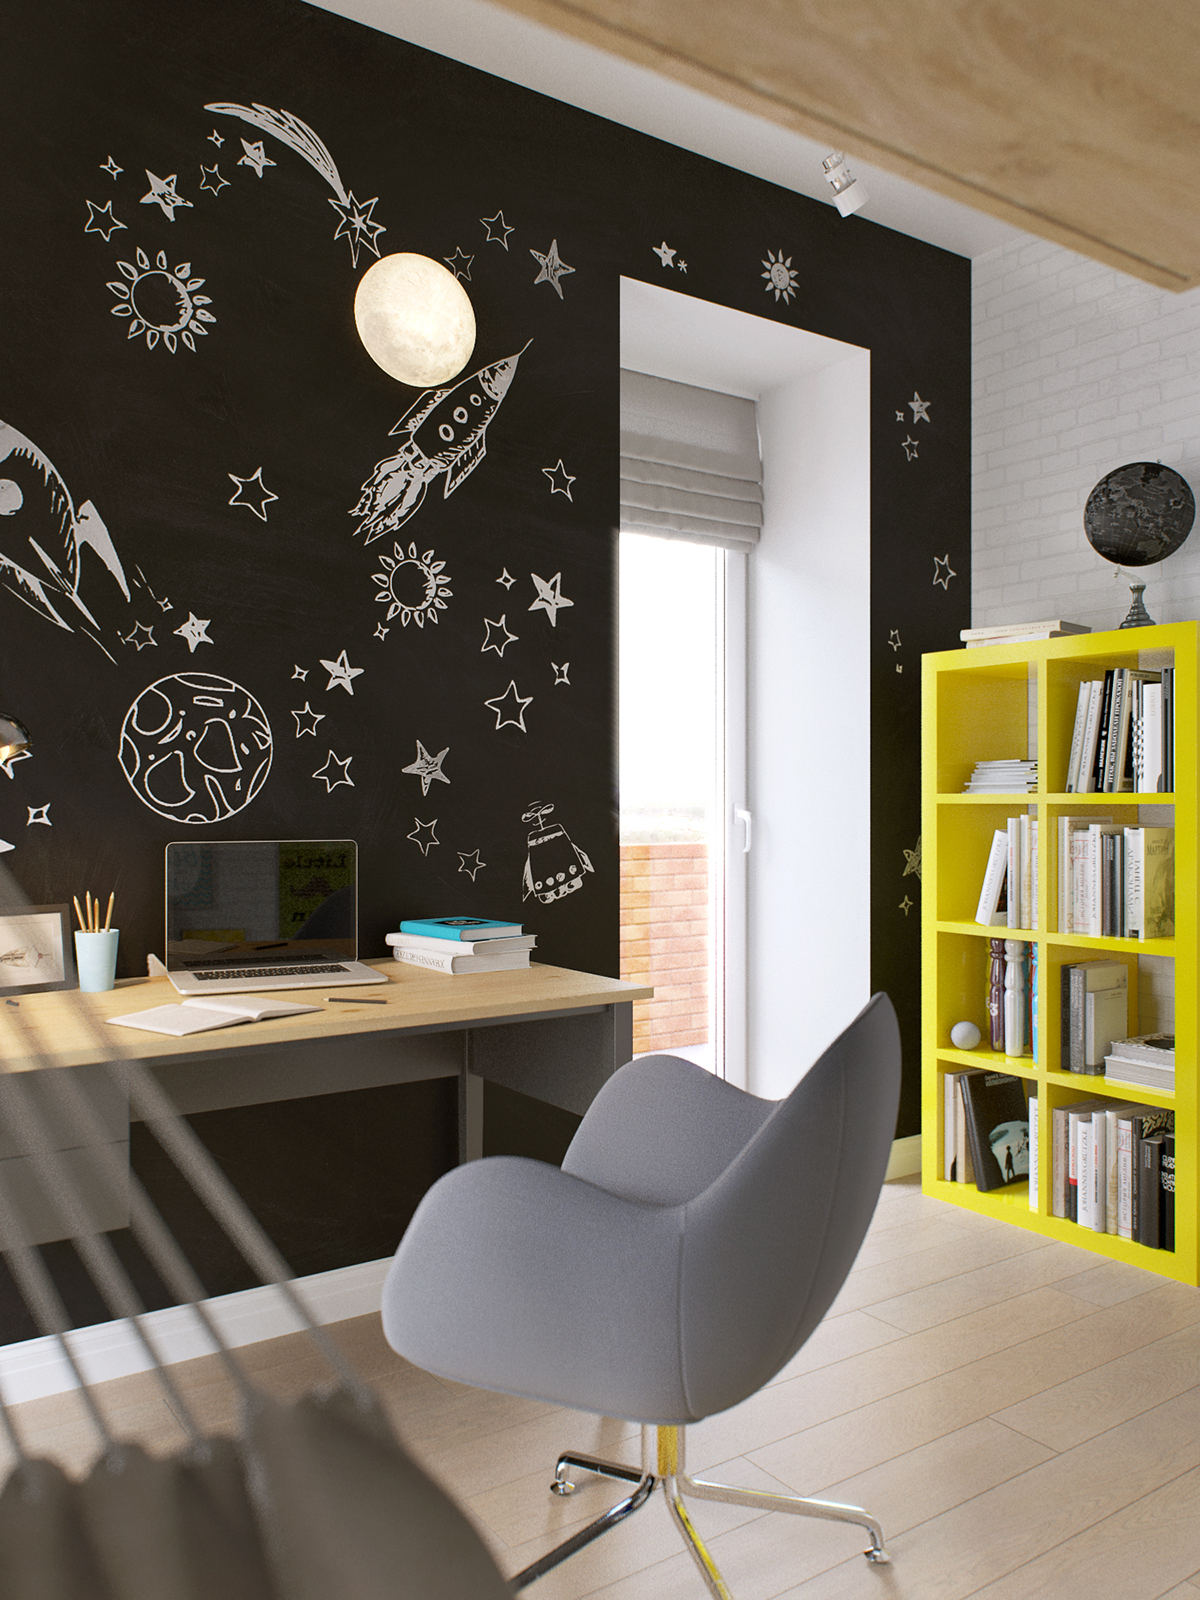 03-The-chalkboard-wallpaper-is-space-themed